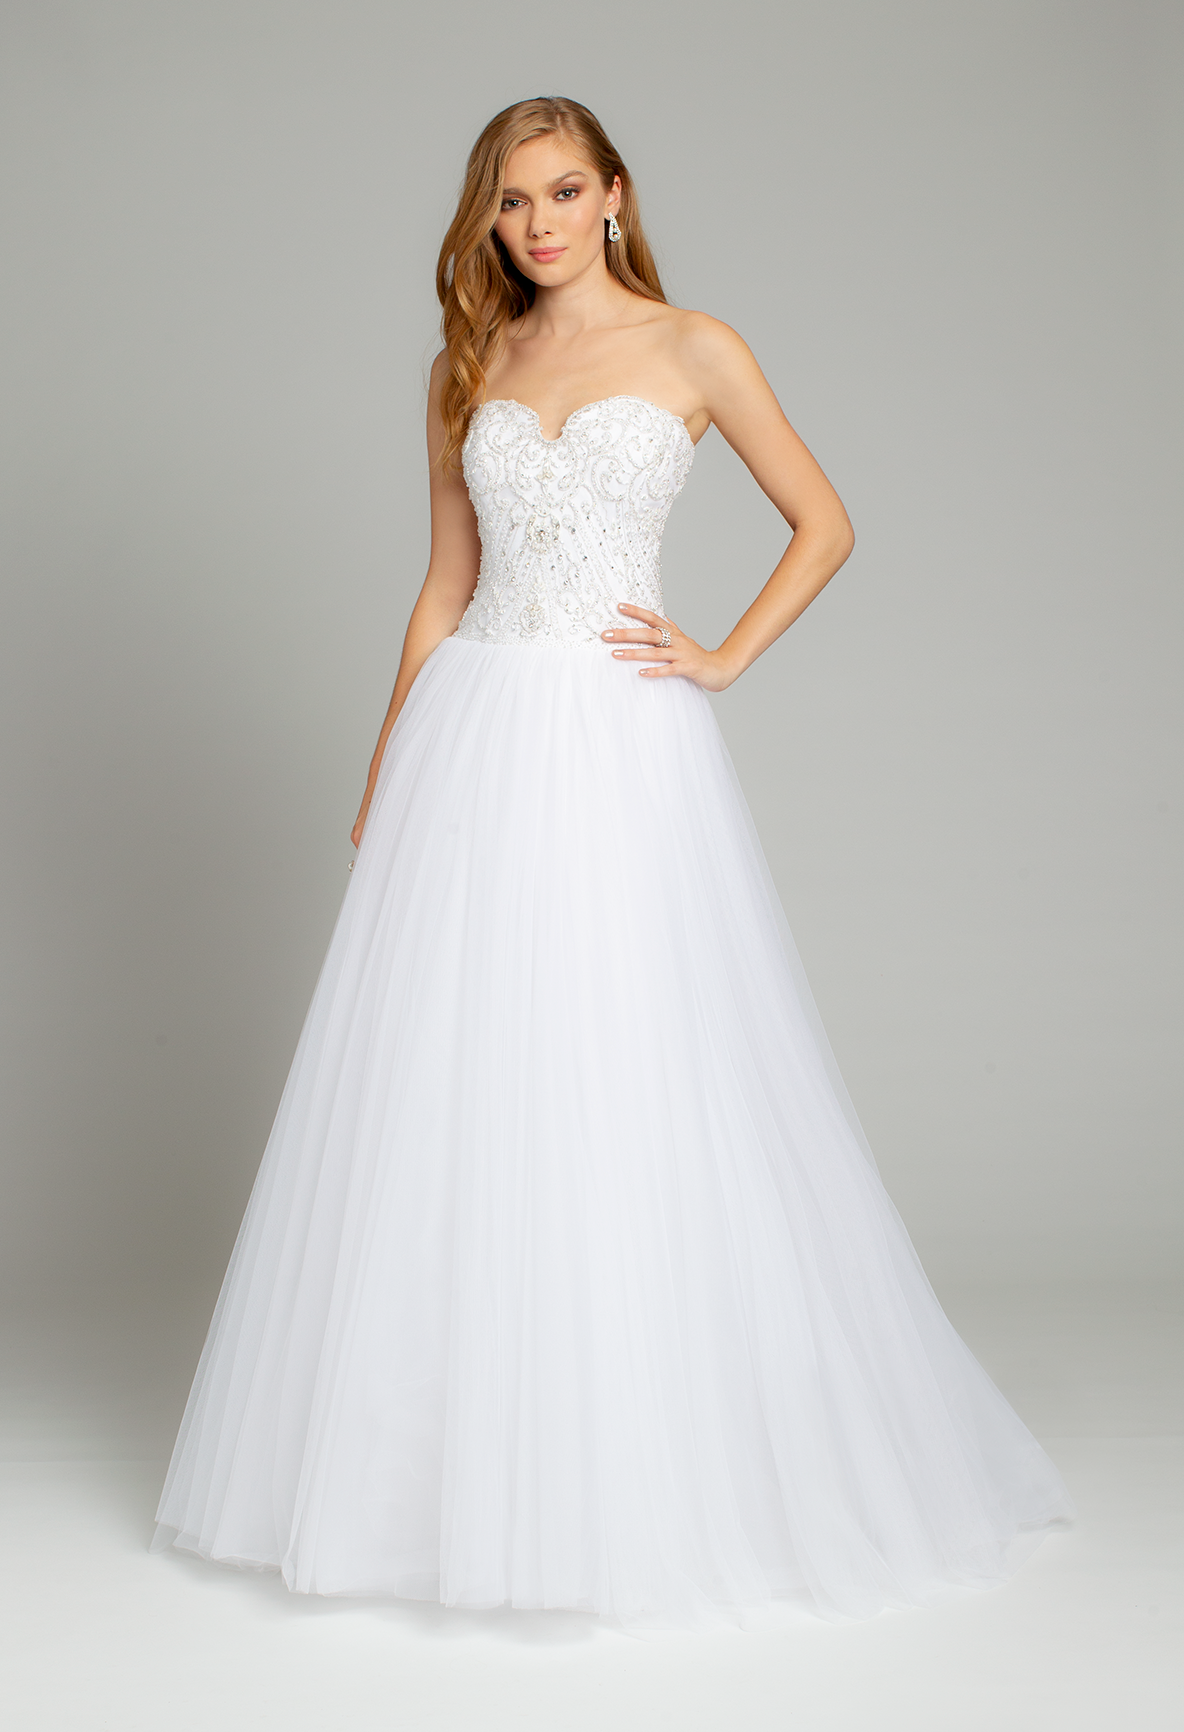 Wedding decorations set october 2018 Tulle Beaded Sweetheart Ballgown Wedding Dress by Camille La Vie in